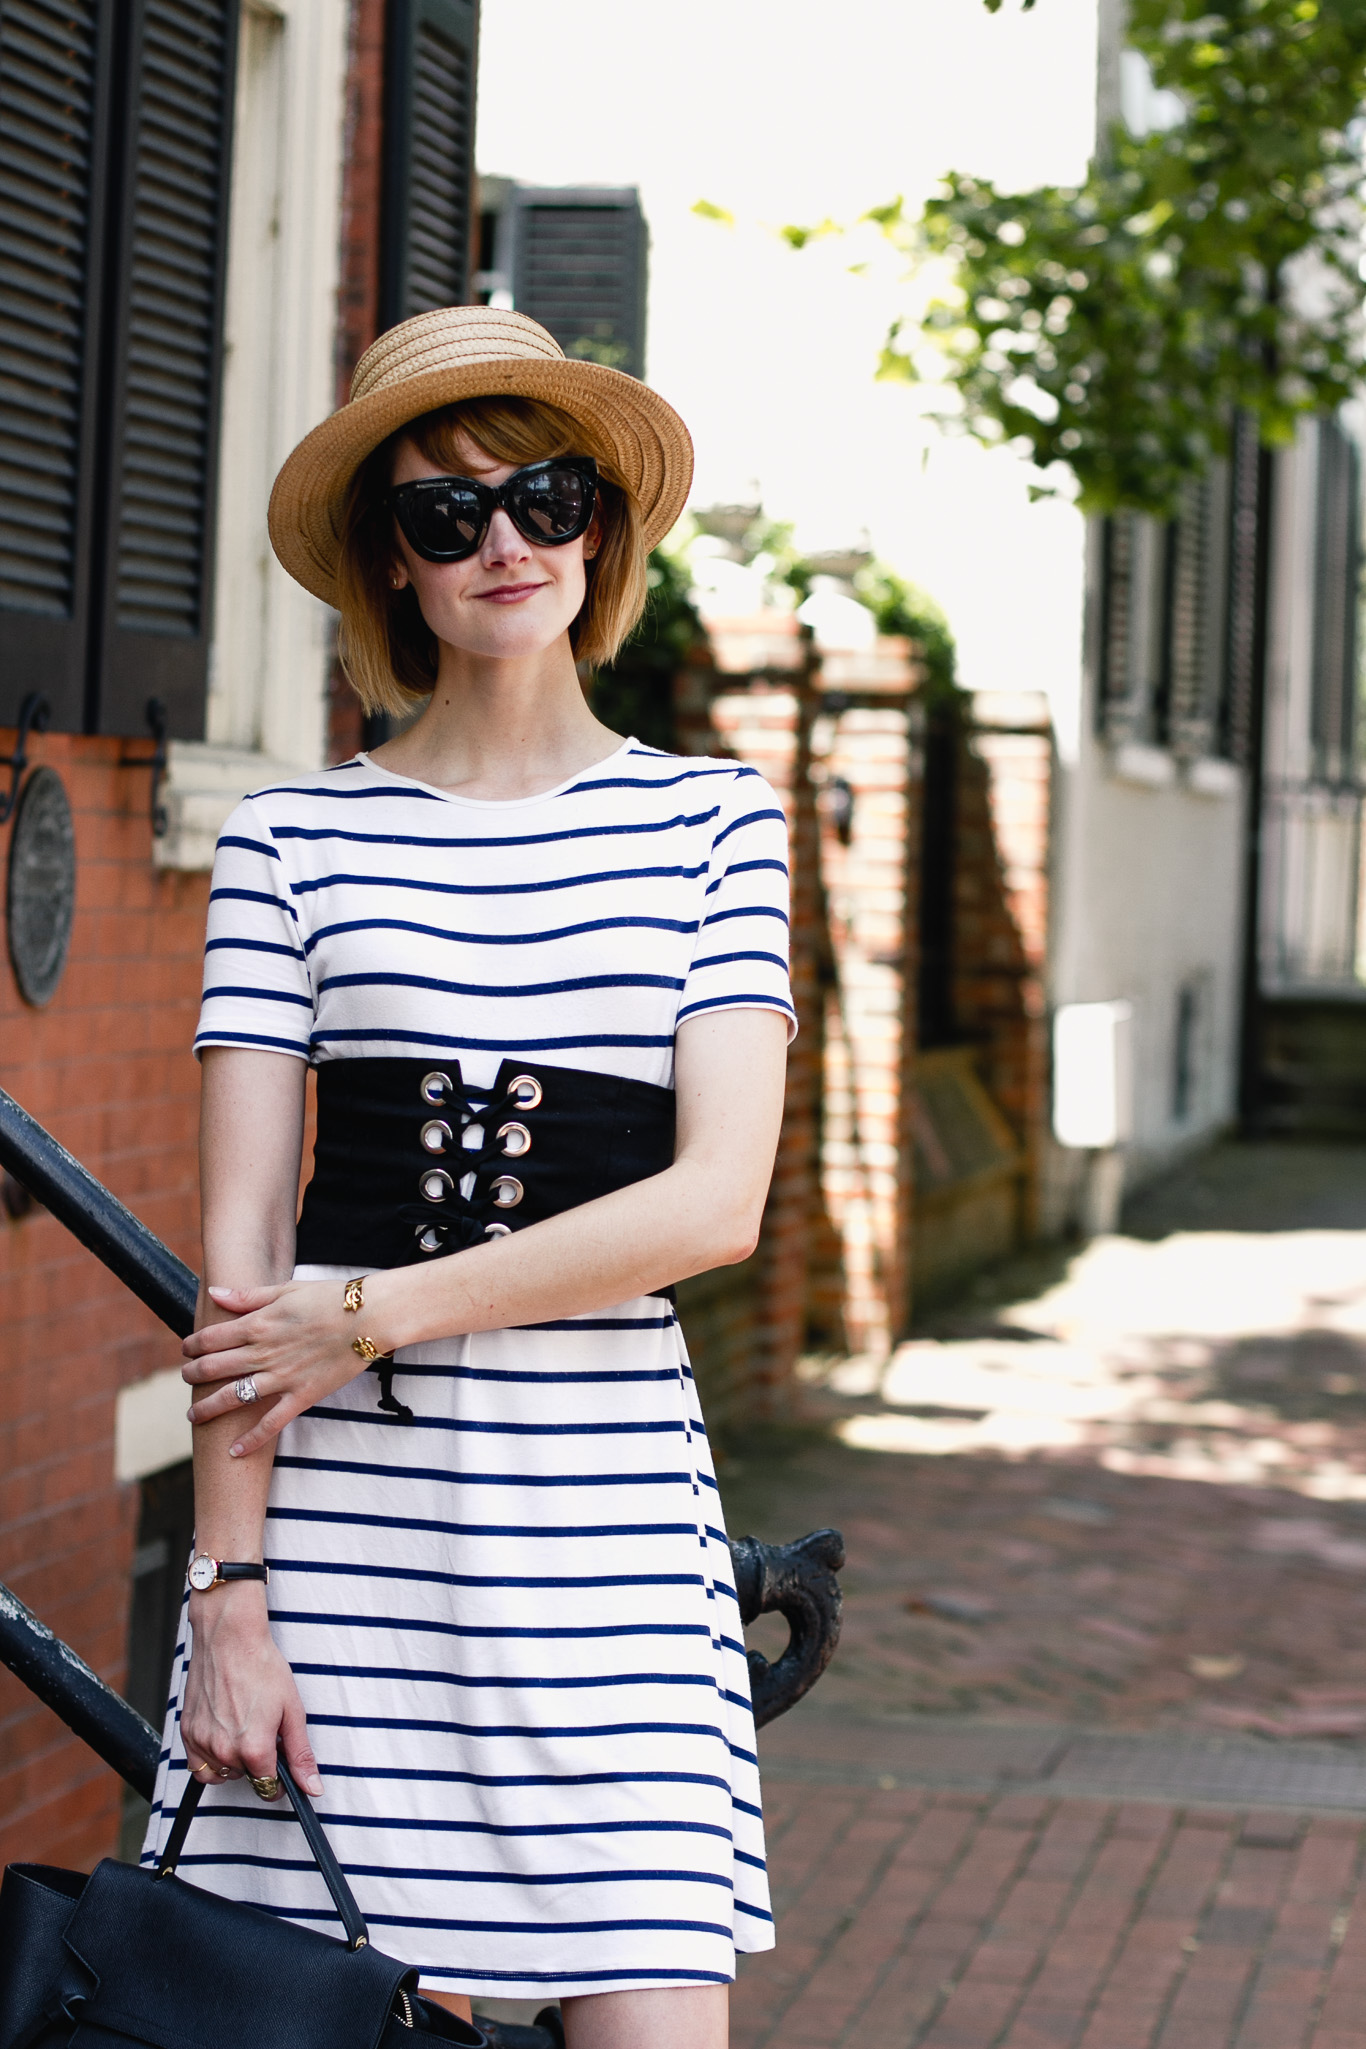 straw boater hat, striped dress, and corset belt